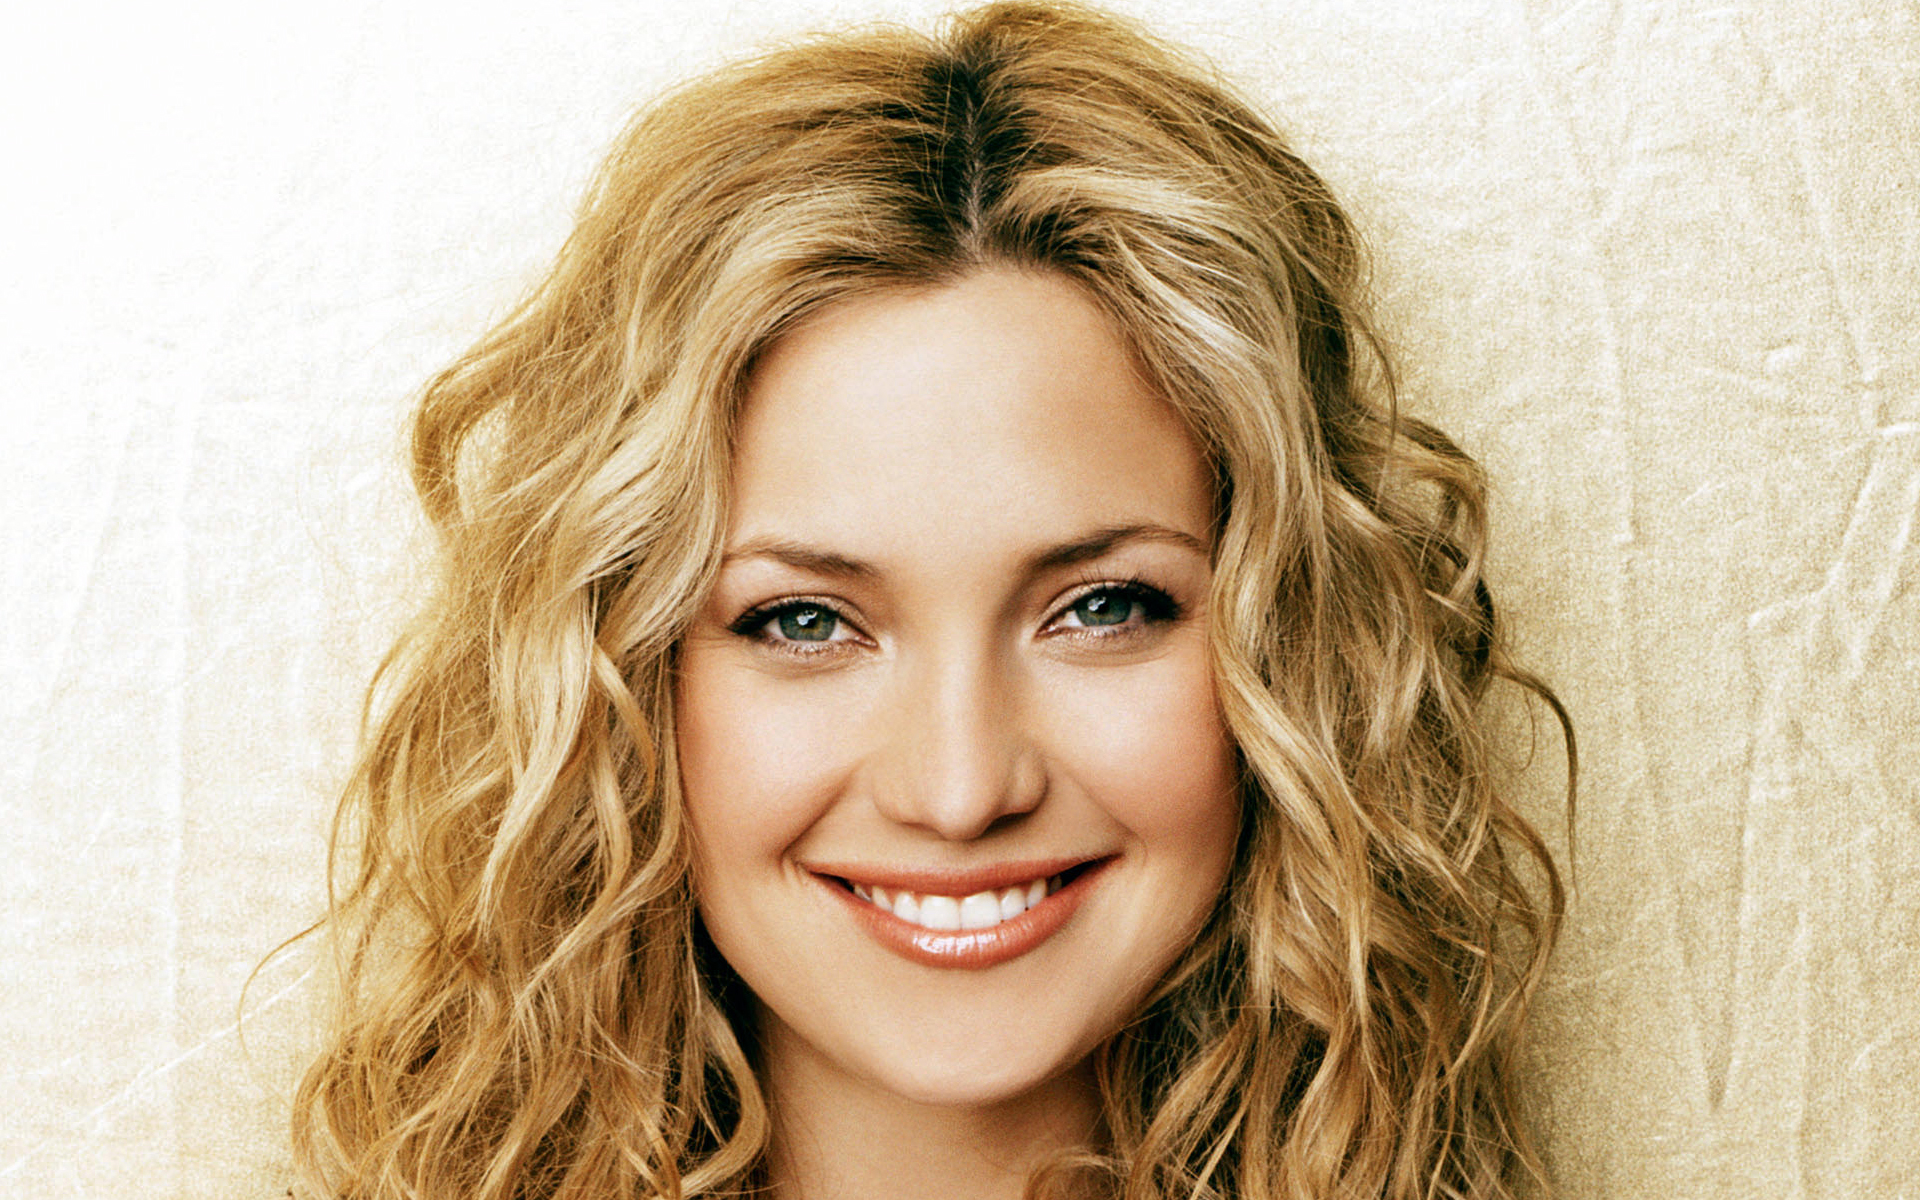 Kate Hudson Wallpapers High Quality | Download Free